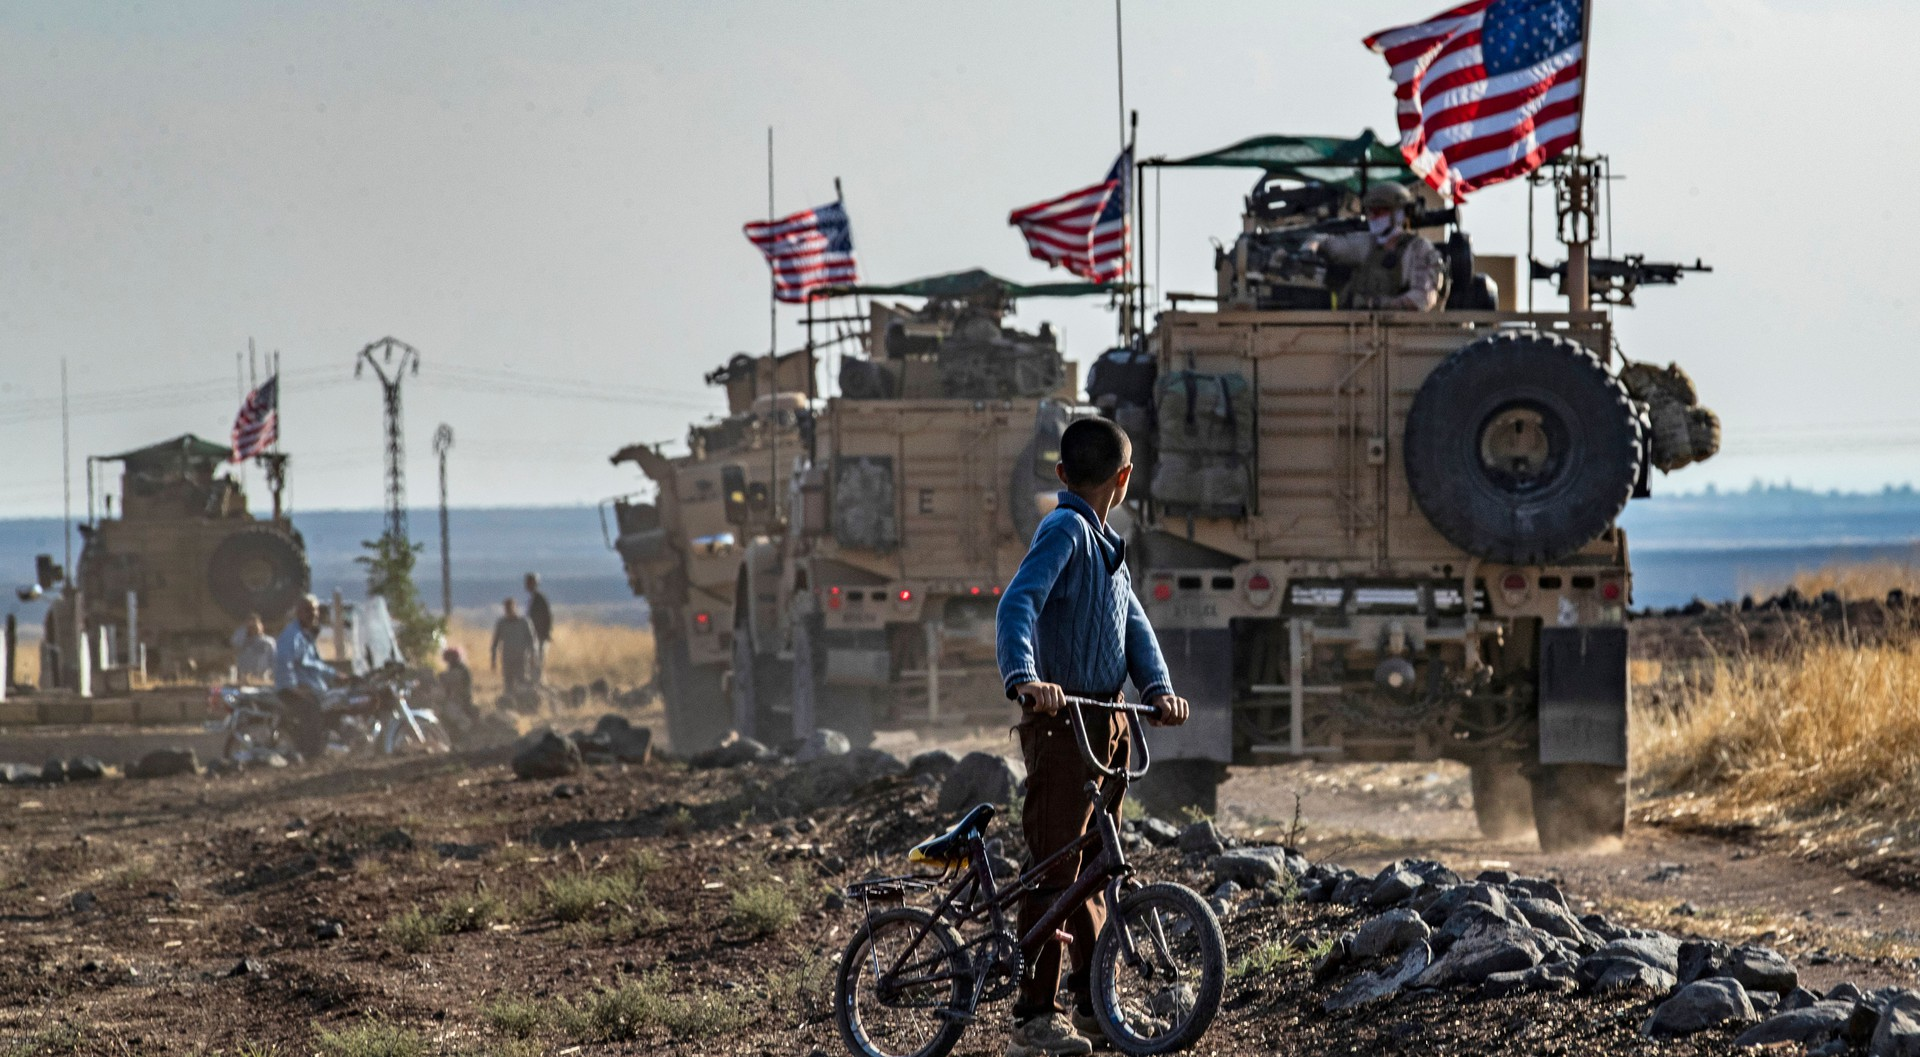 A Syrian boy on a bicycle watched a convoy of US armored vehicles drive away on a dirt road in northeastern Syria.